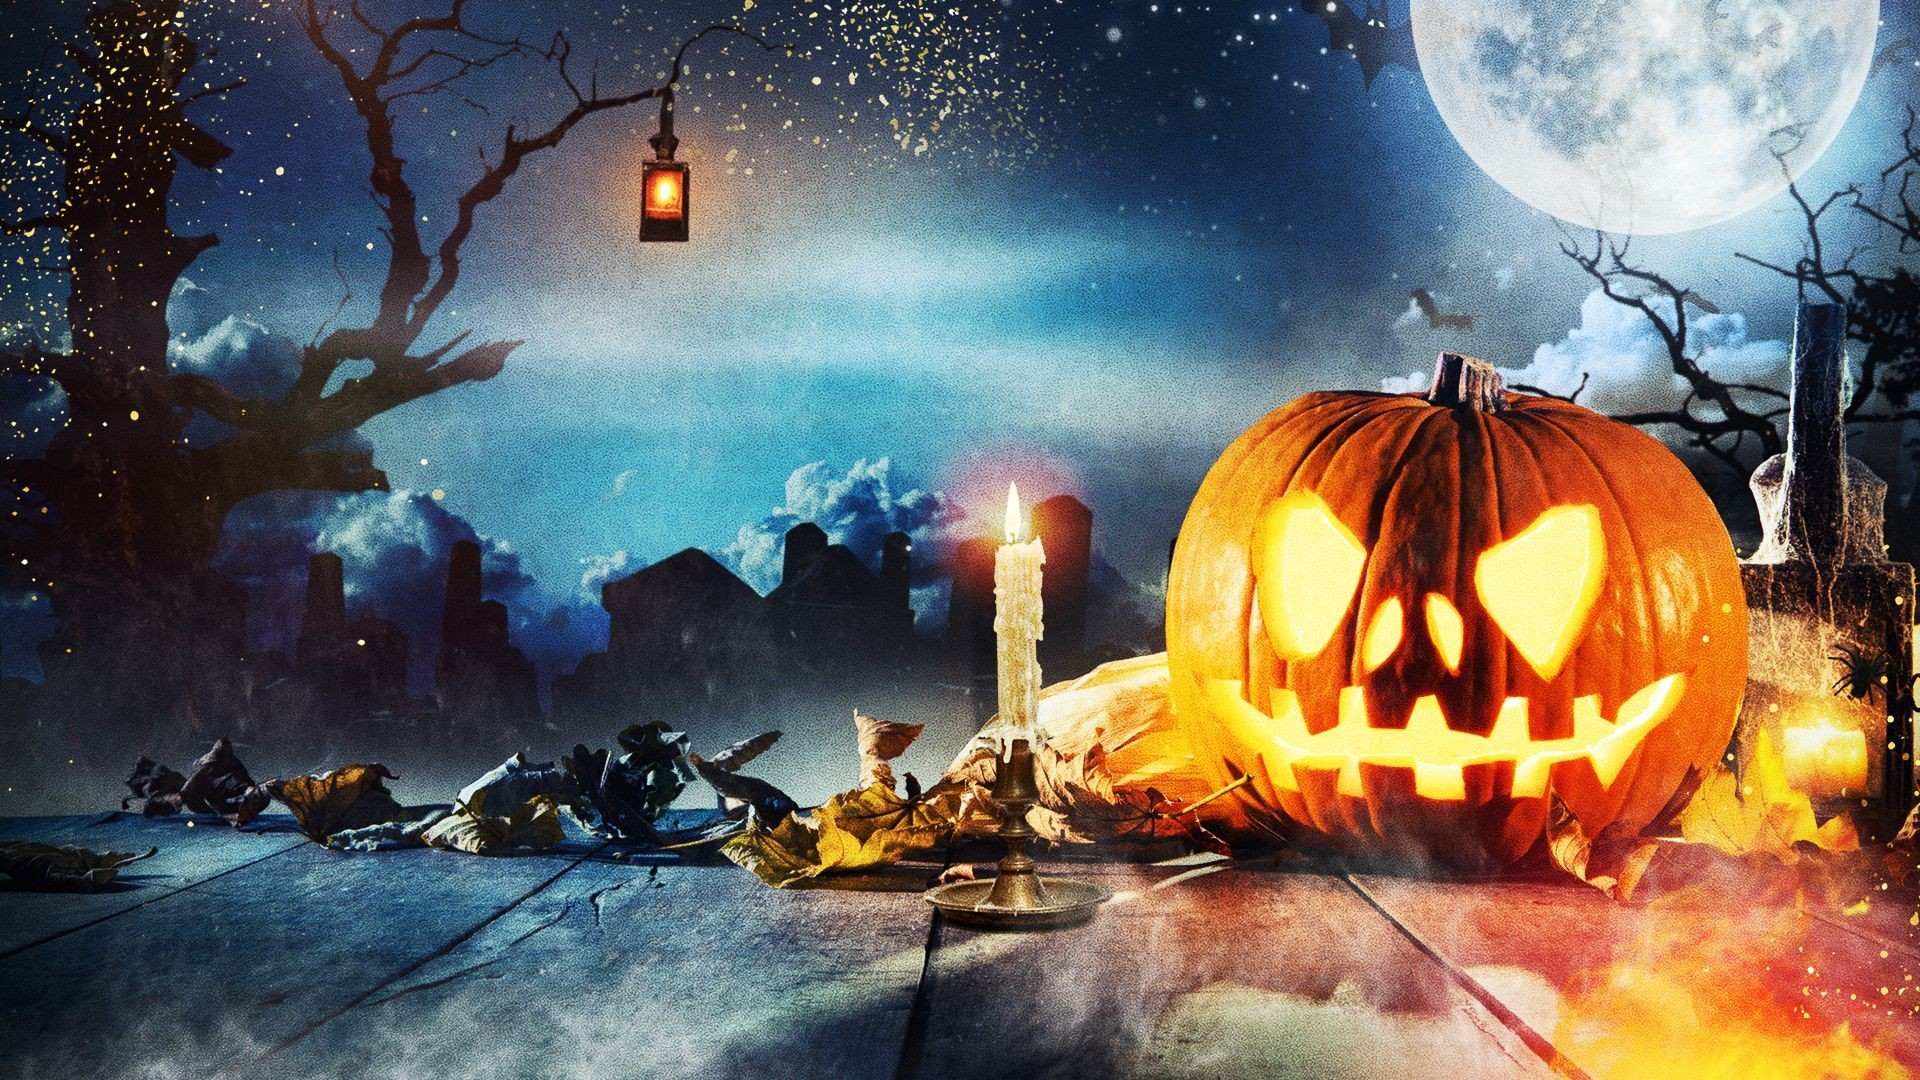 Halloween 2020 Wallpaper for pc